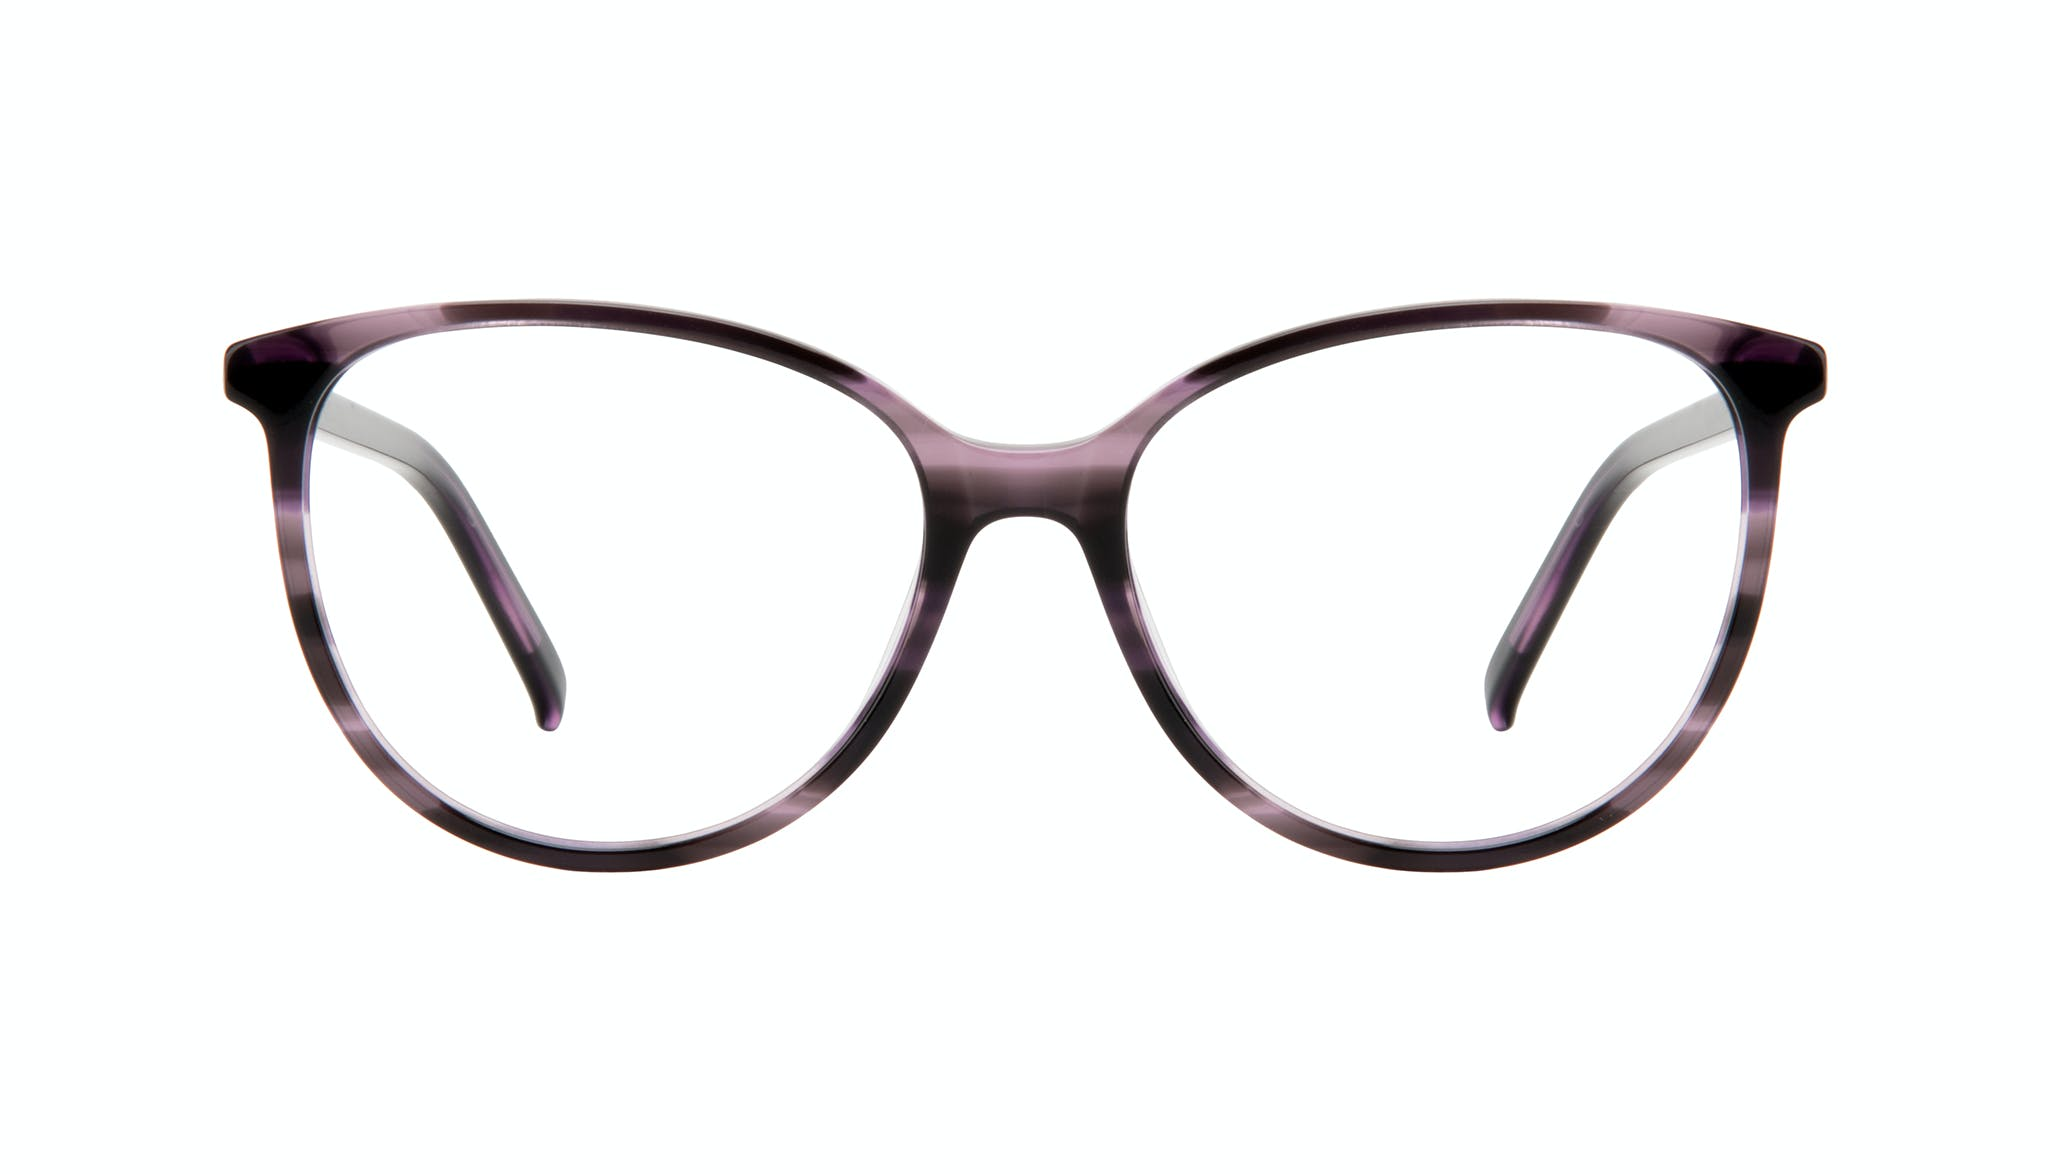 Affordable Fashion Glasses Cat Eye Round Eyeglasses Women Imagine Leopard Front